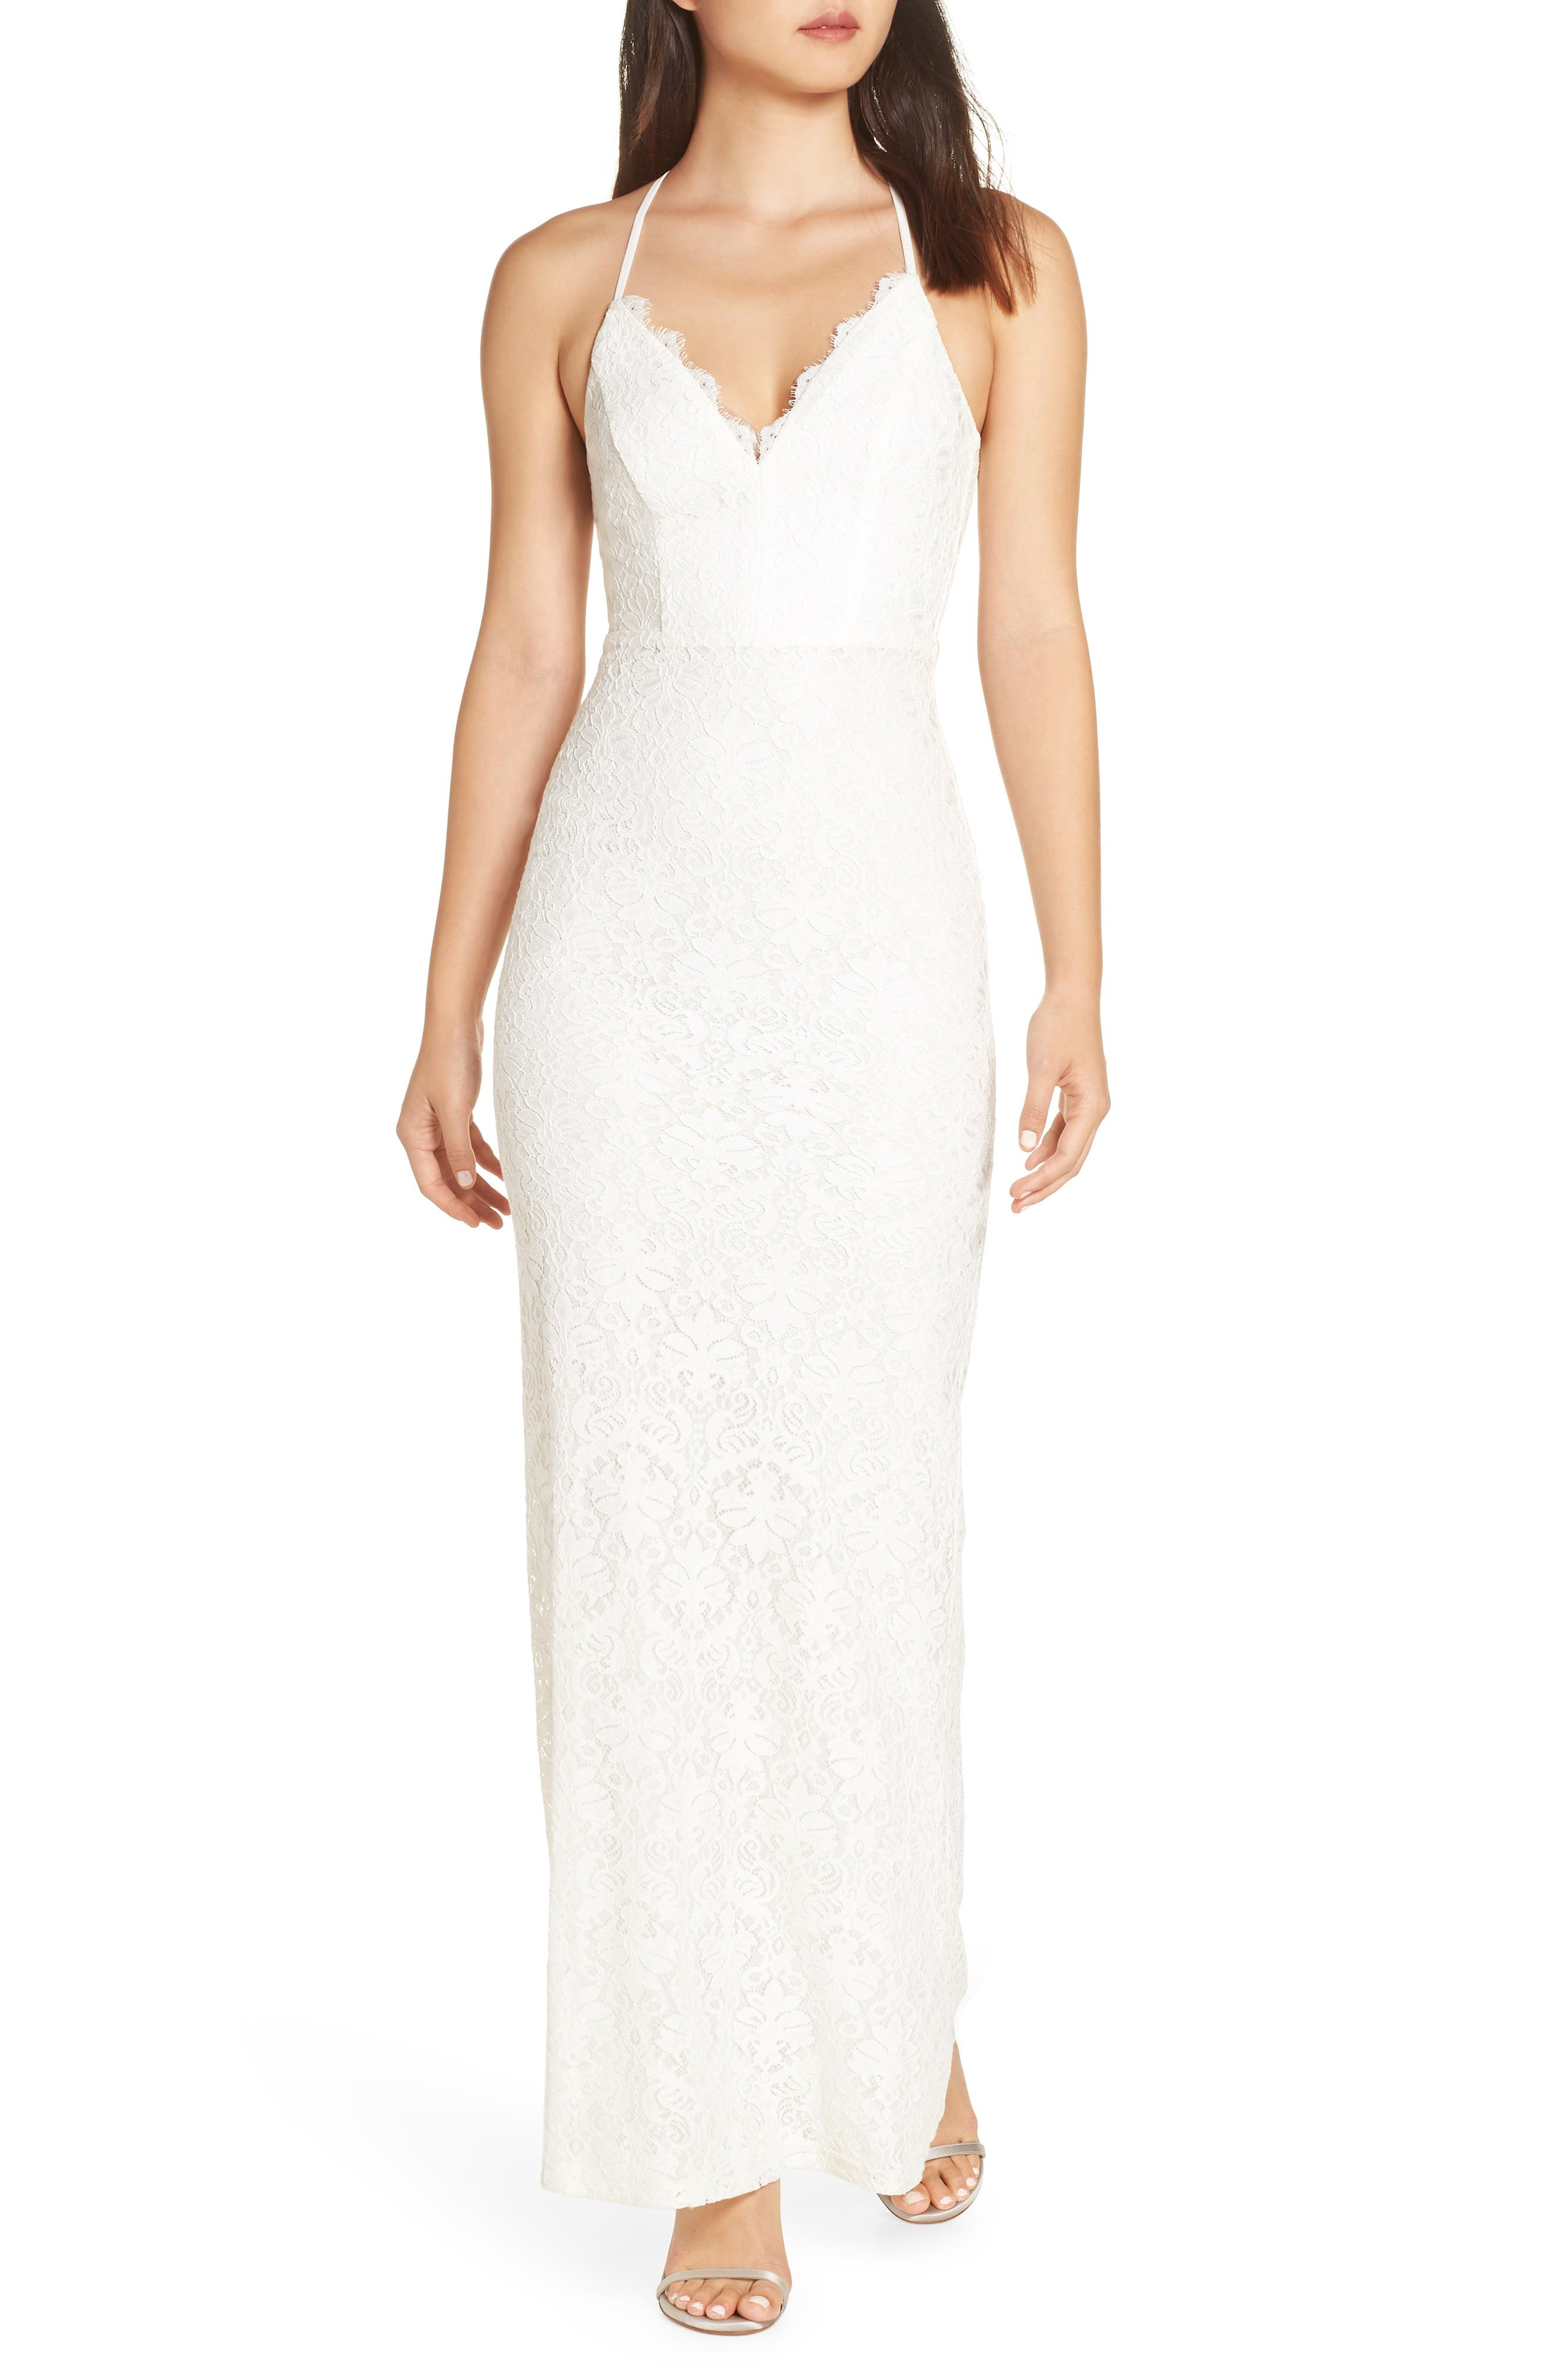 Lulus Alice Crisscross Back Gown, White